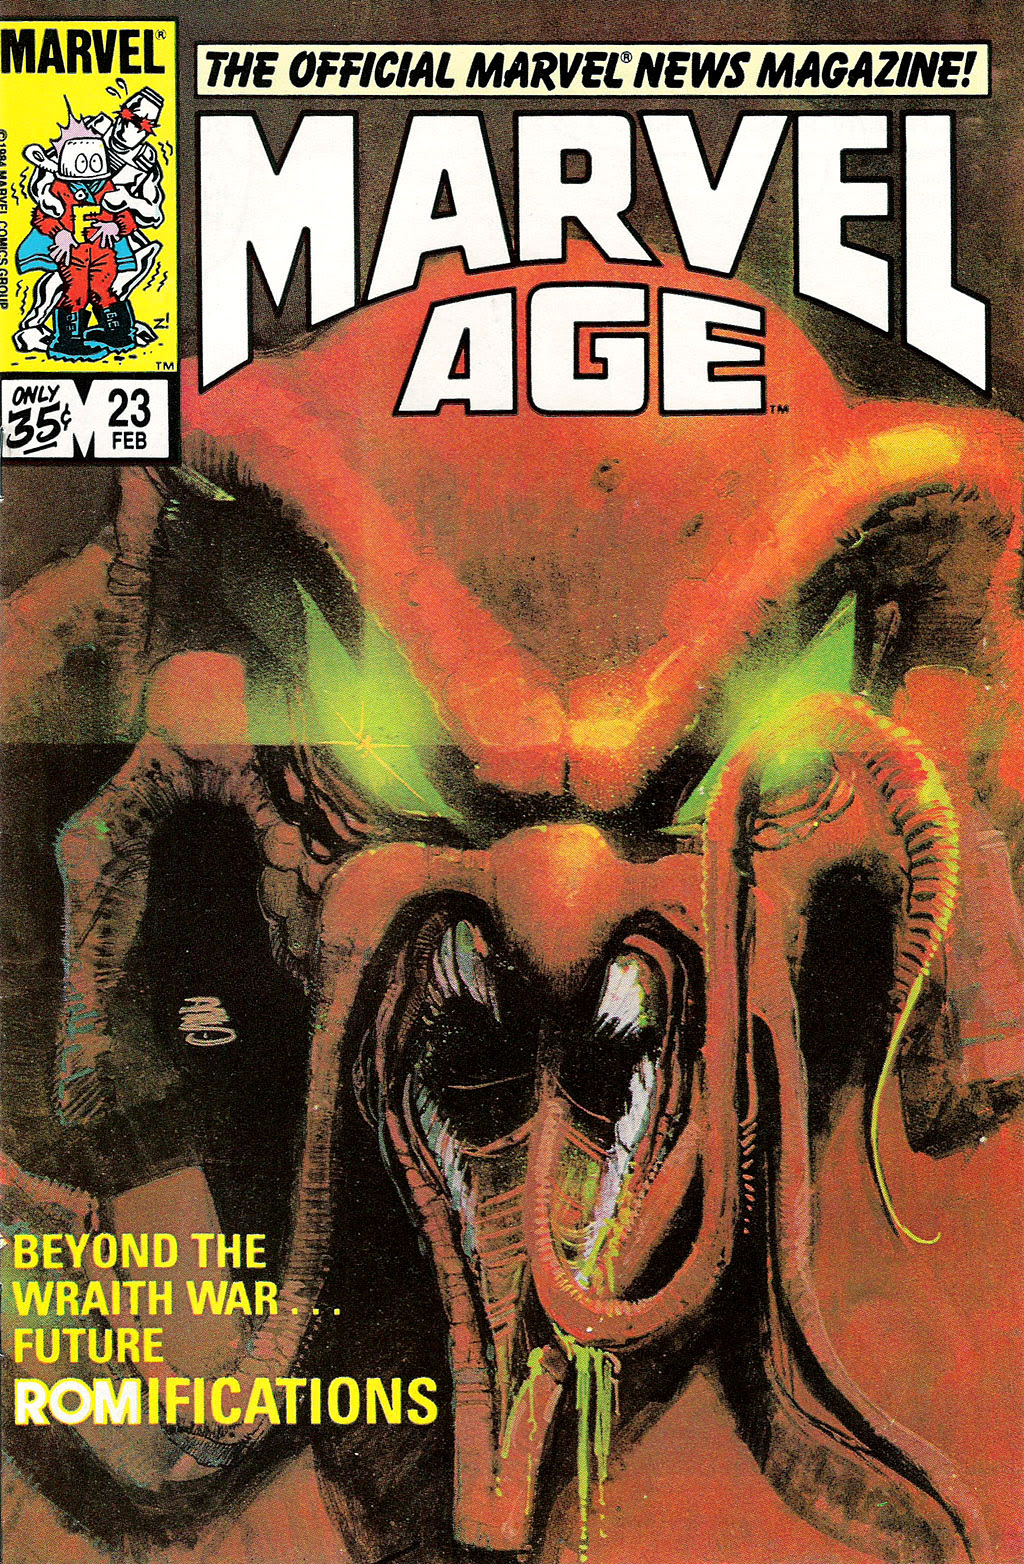 Bill Sienkiewicz - Marvel Age #23, February 1985